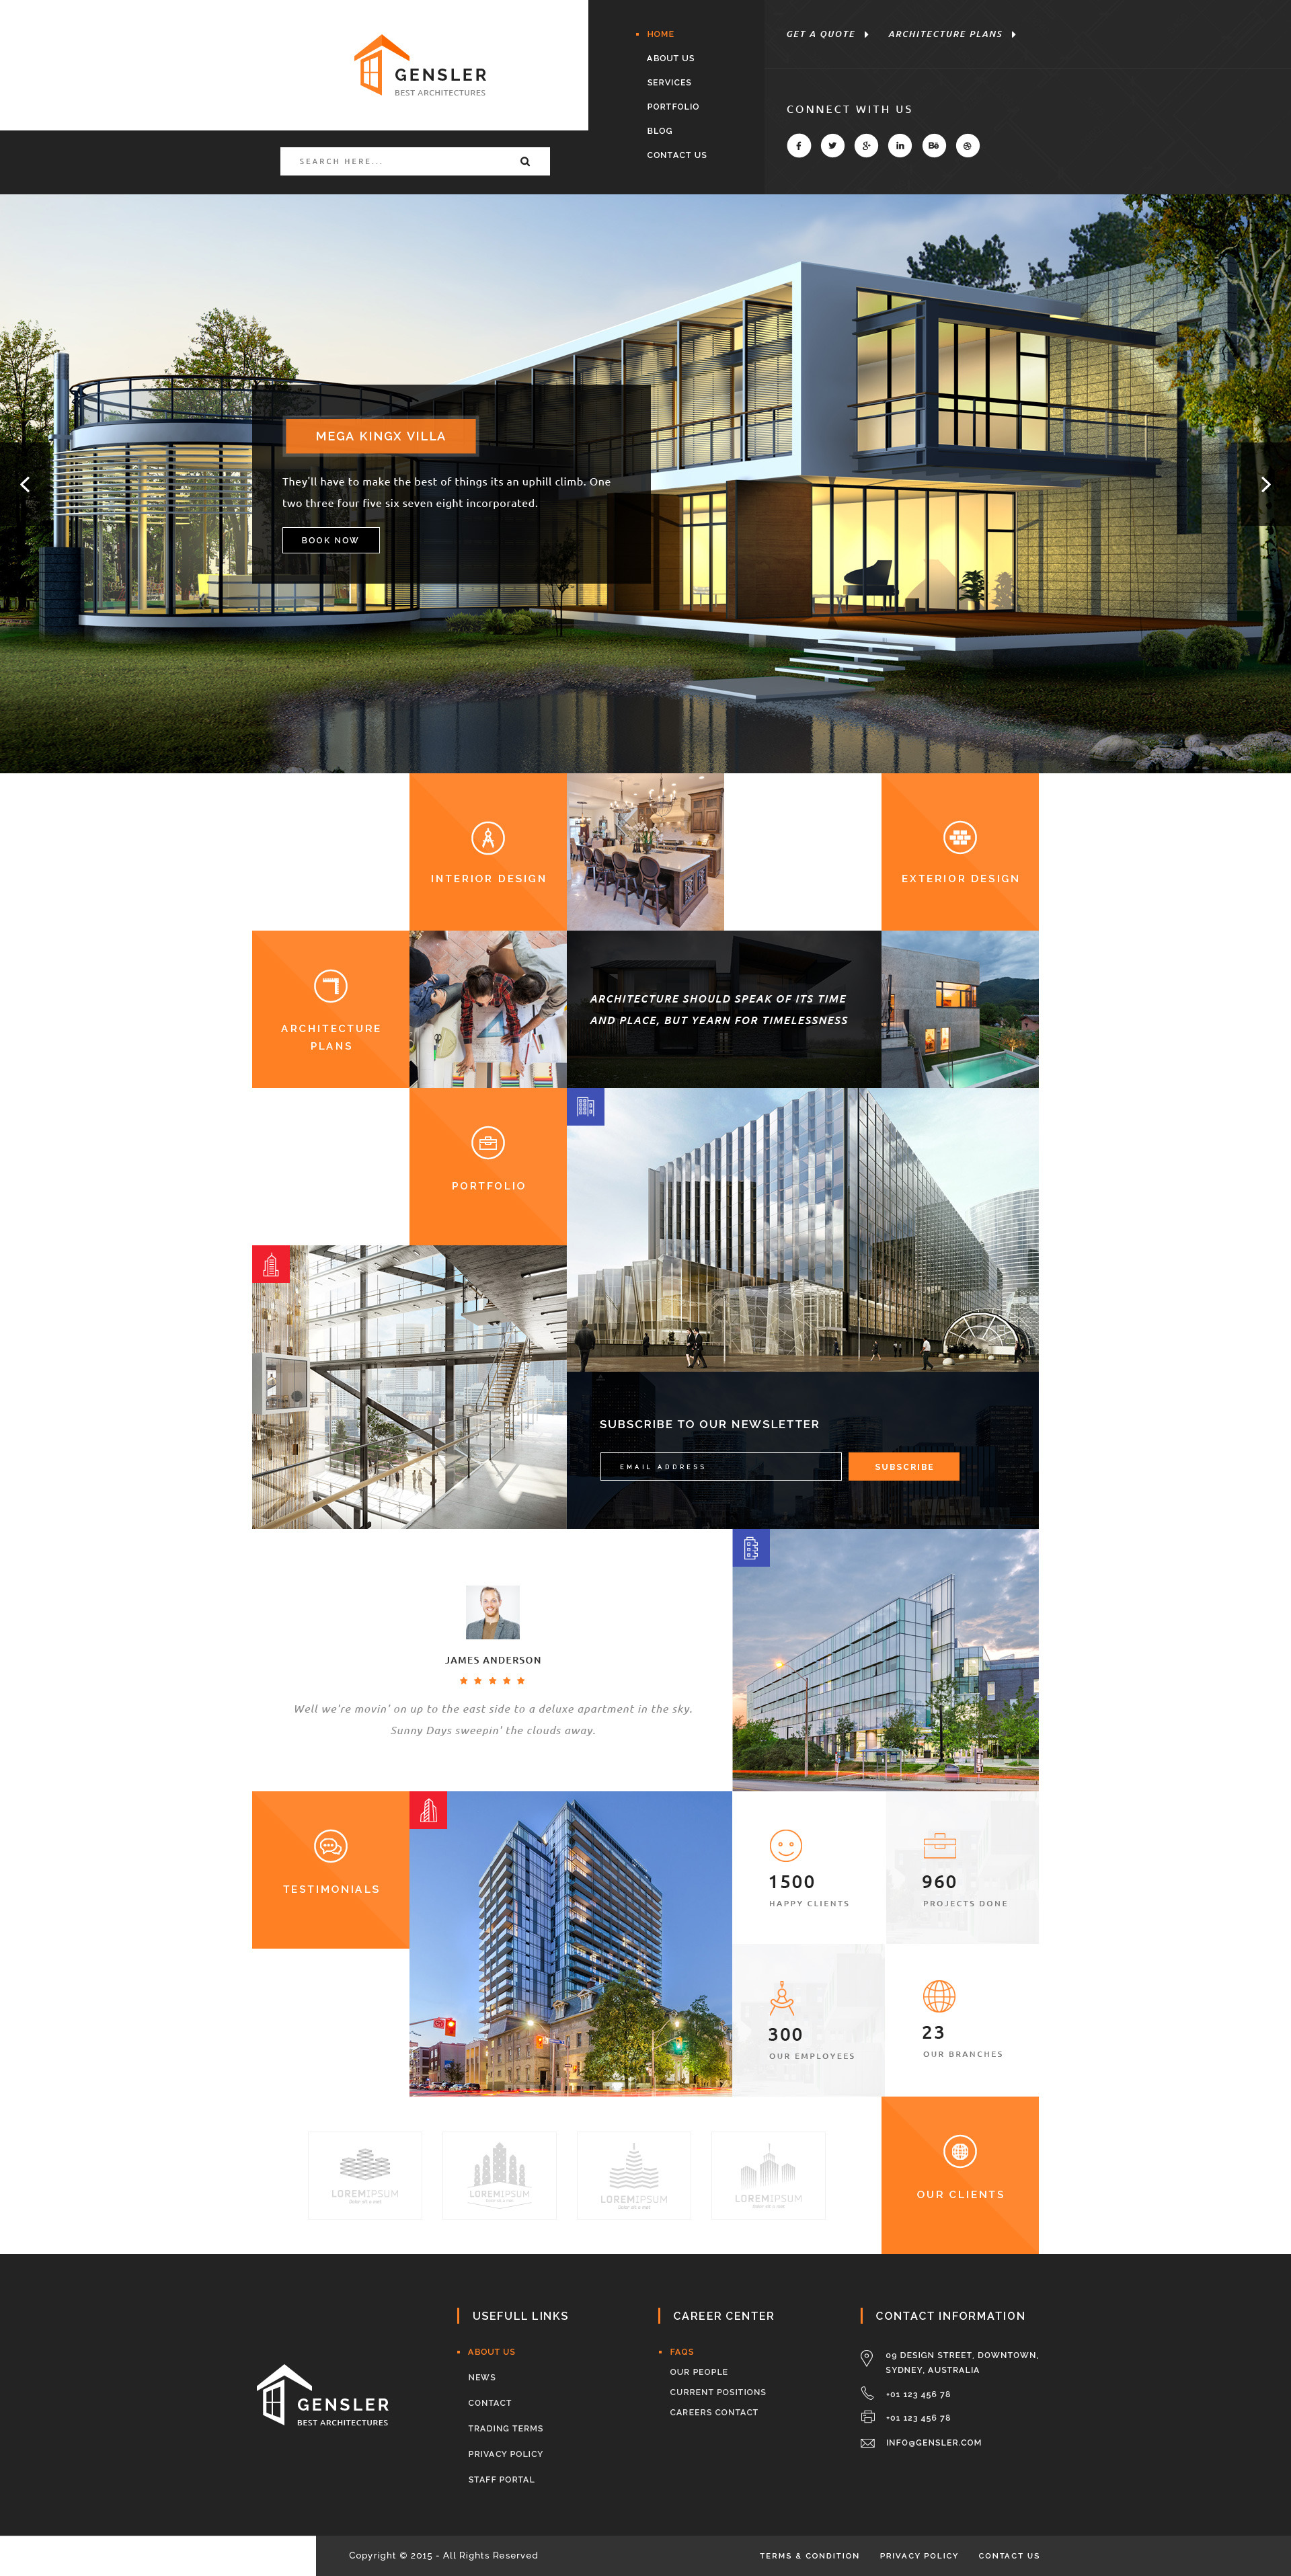 gensler-architecture-psd-template